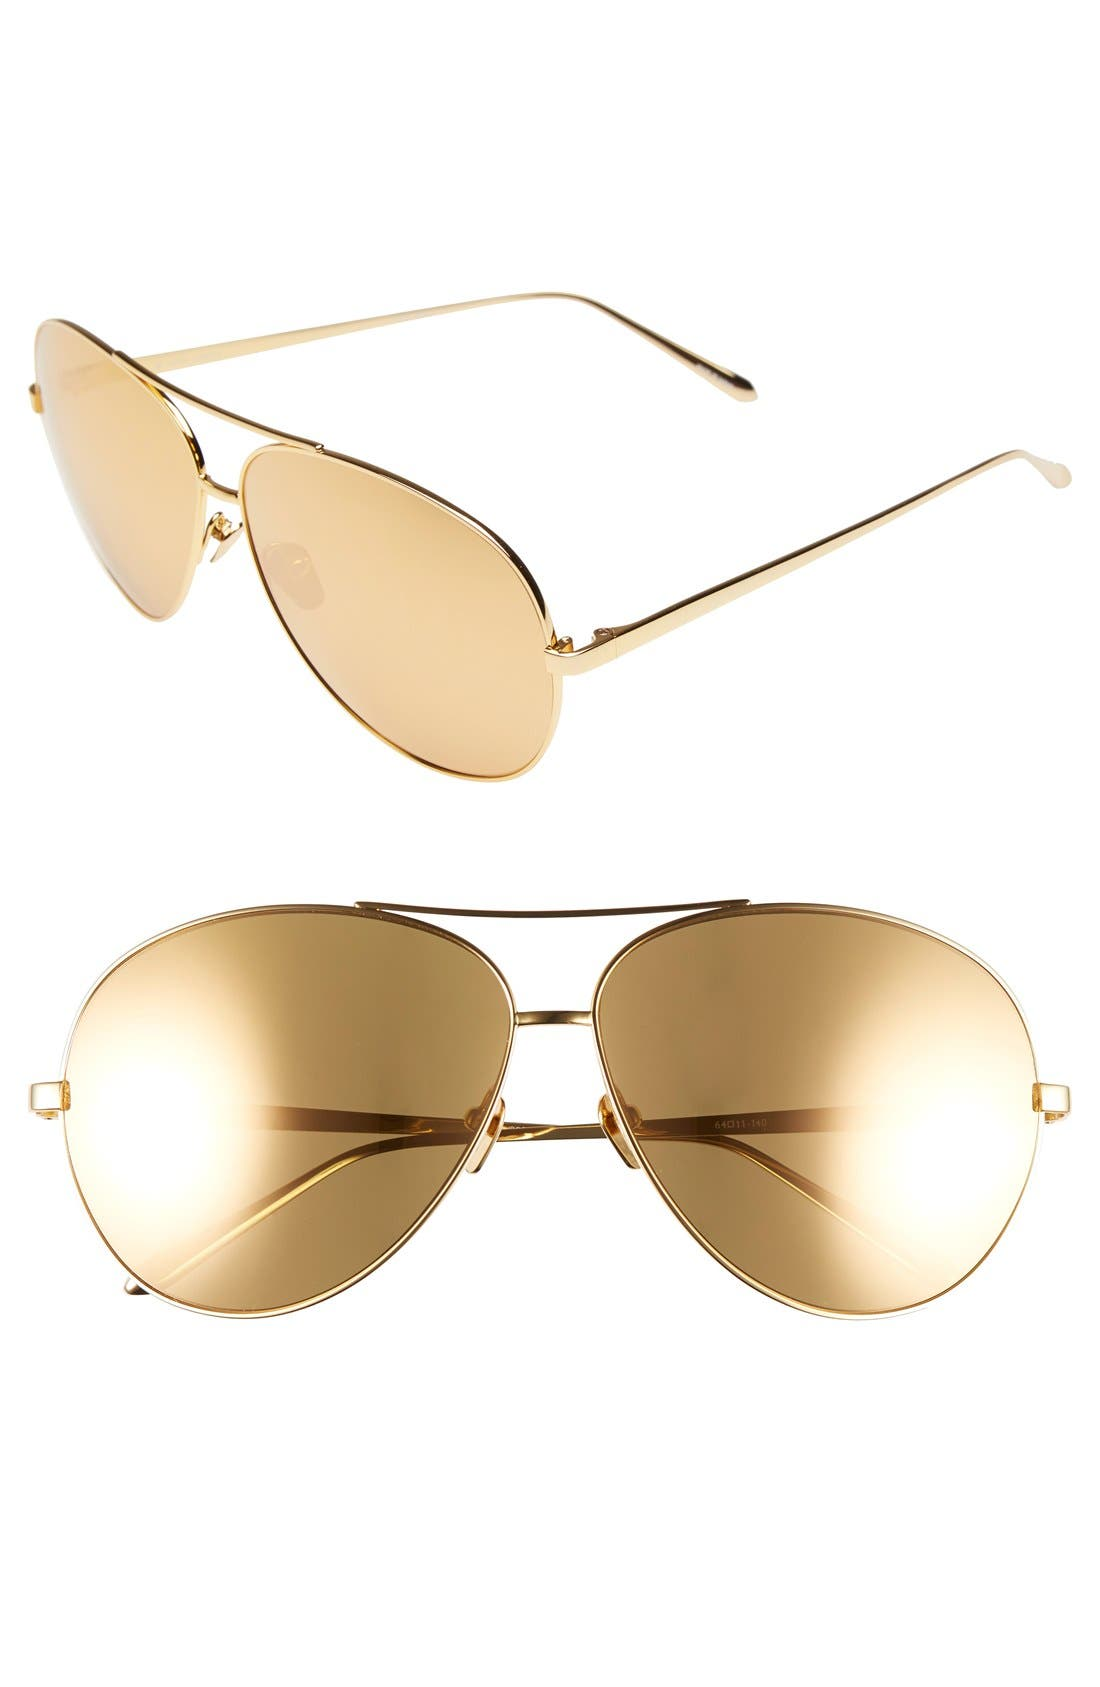 Alternate Image 1 Selected - Linda Farrow 64mm 22 Karat Gold Plated Aviator Sunglasses